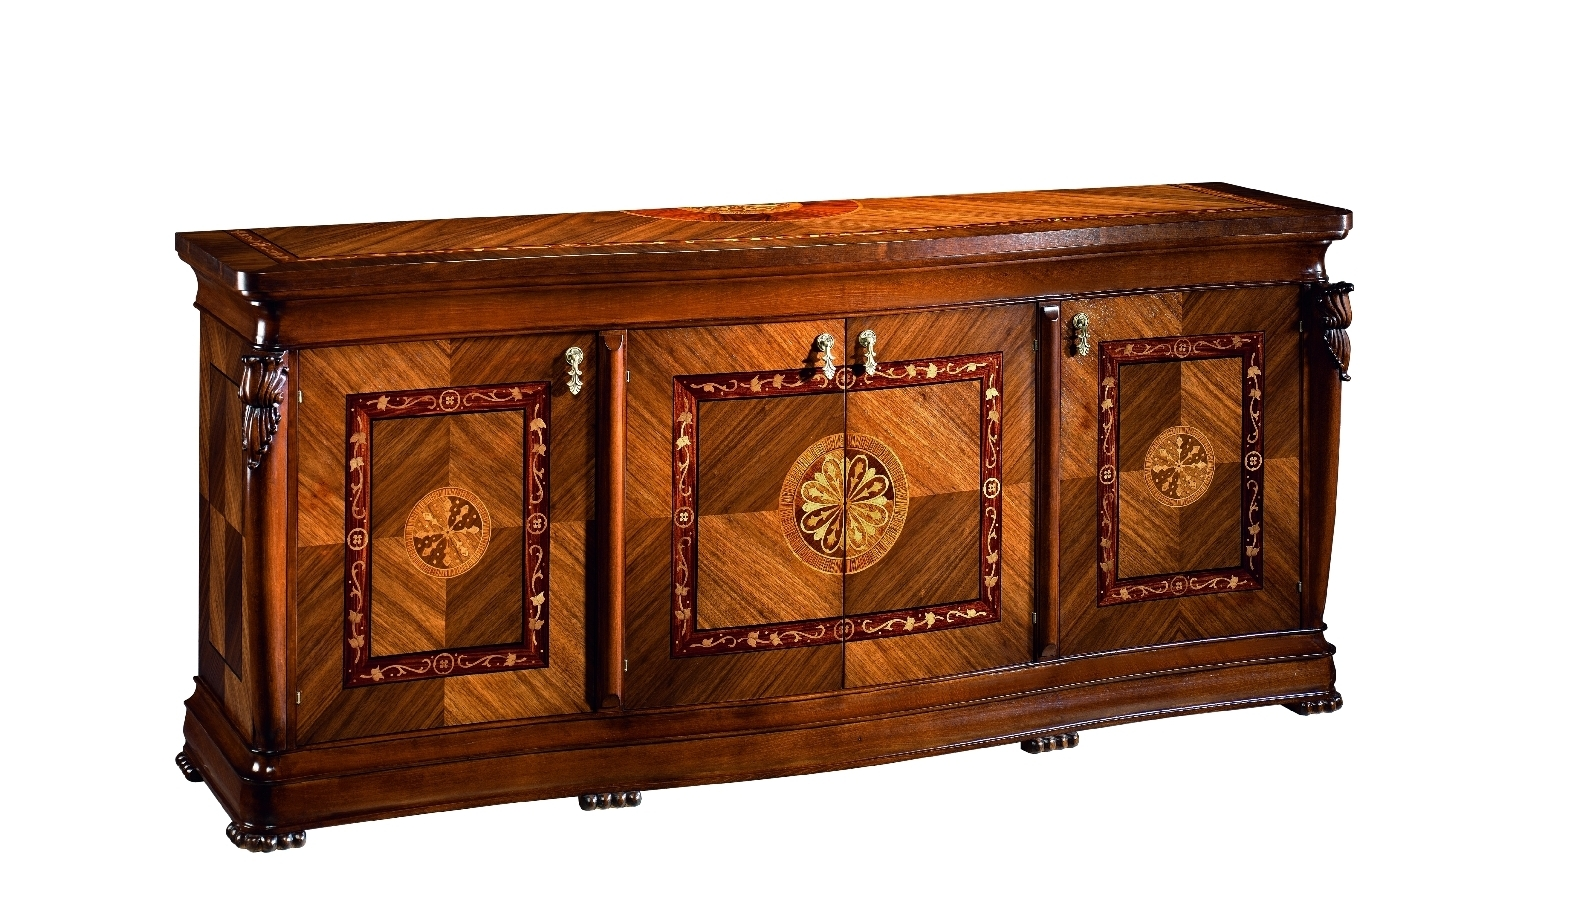 best of european made furniture cradenza with marquetry